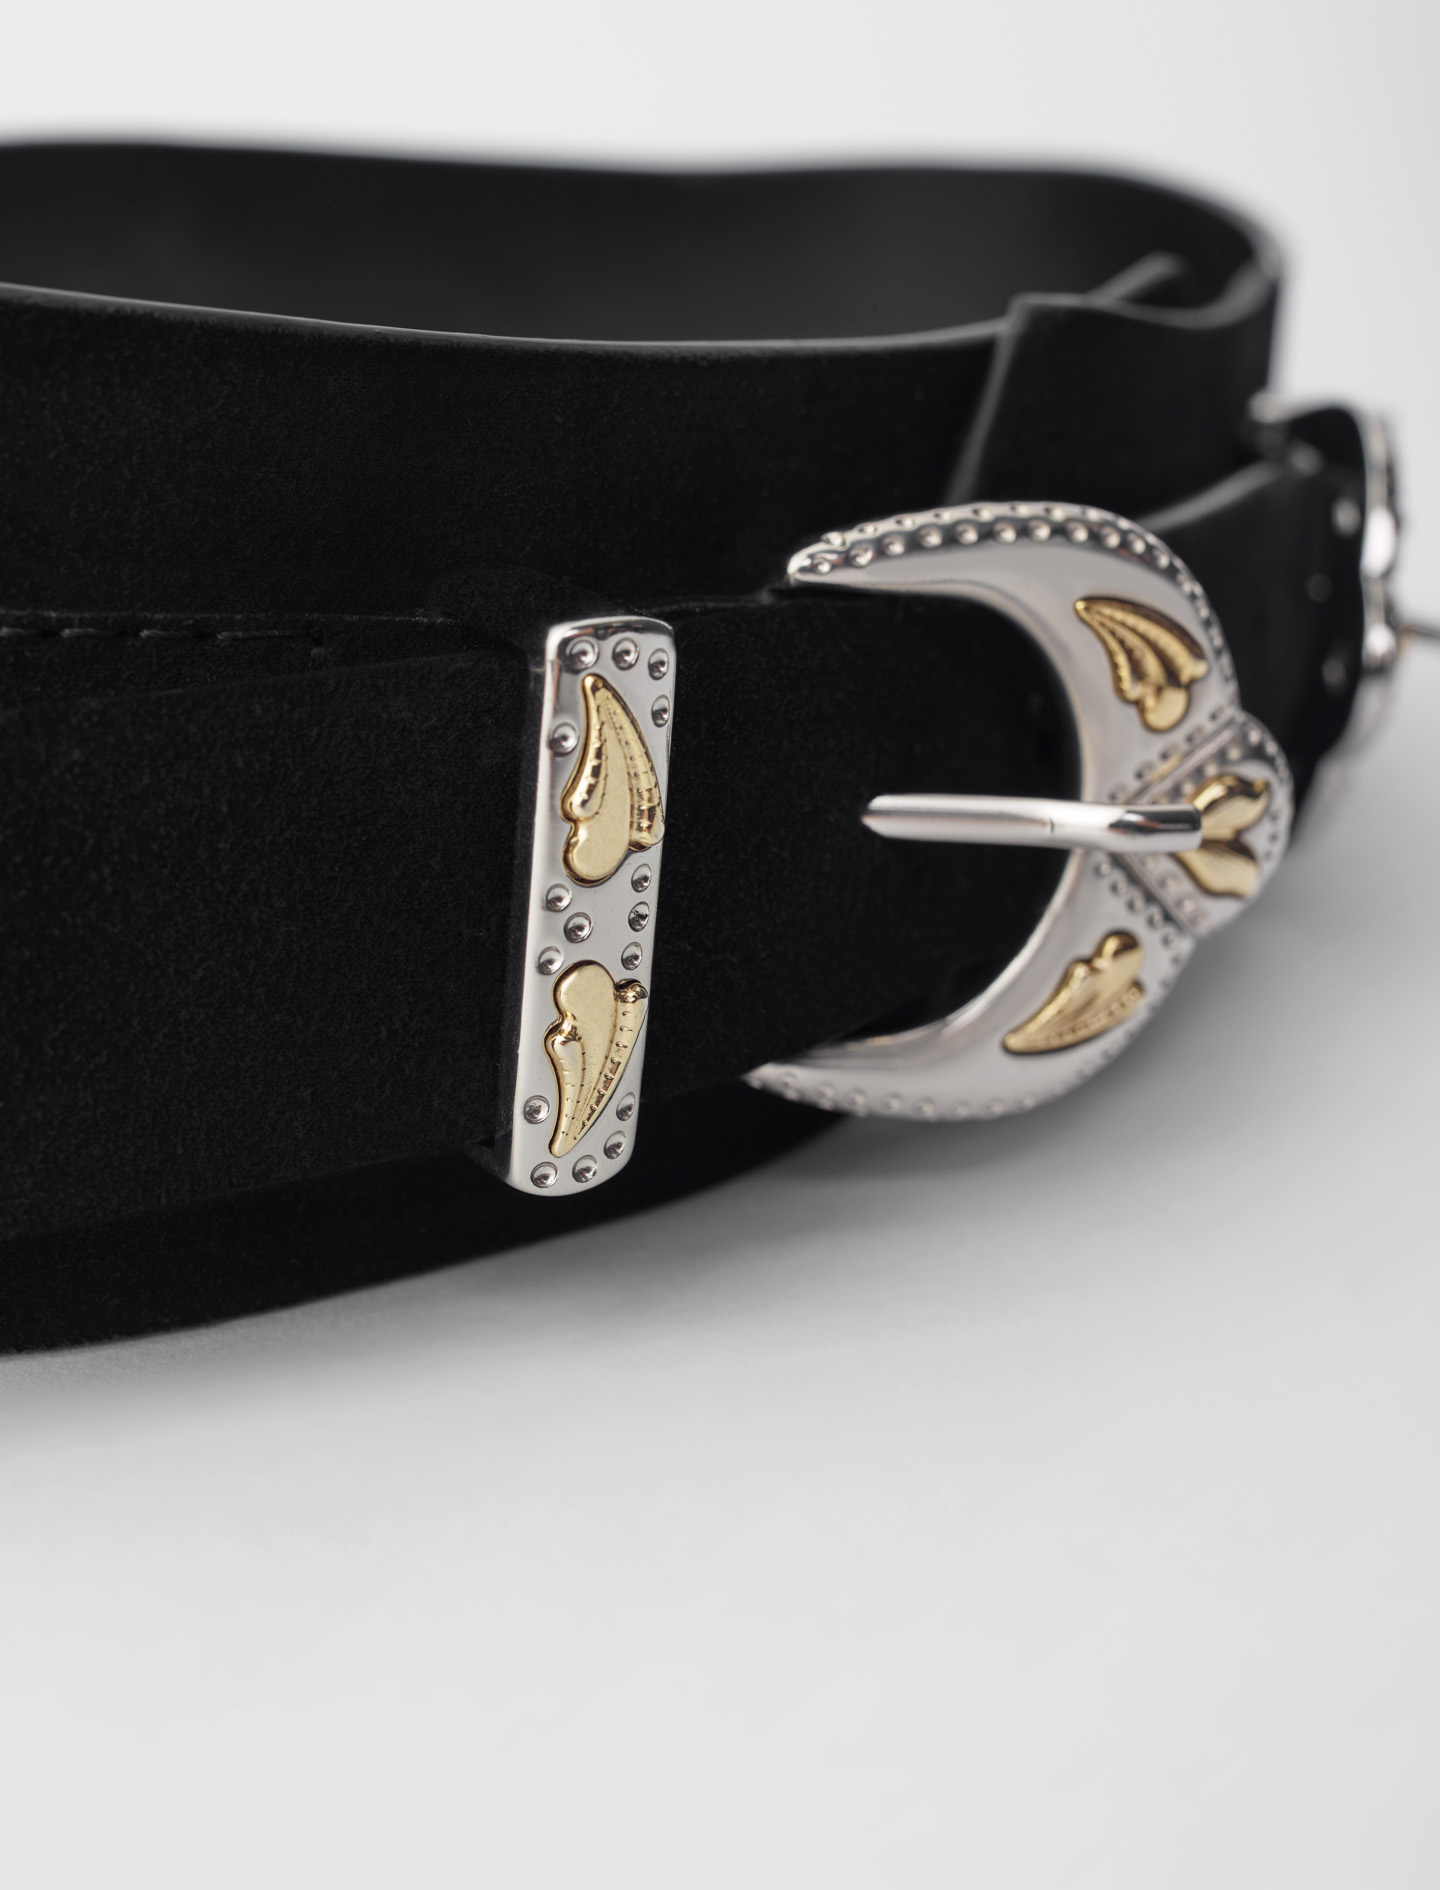 Western suede belt with double buckle - Black